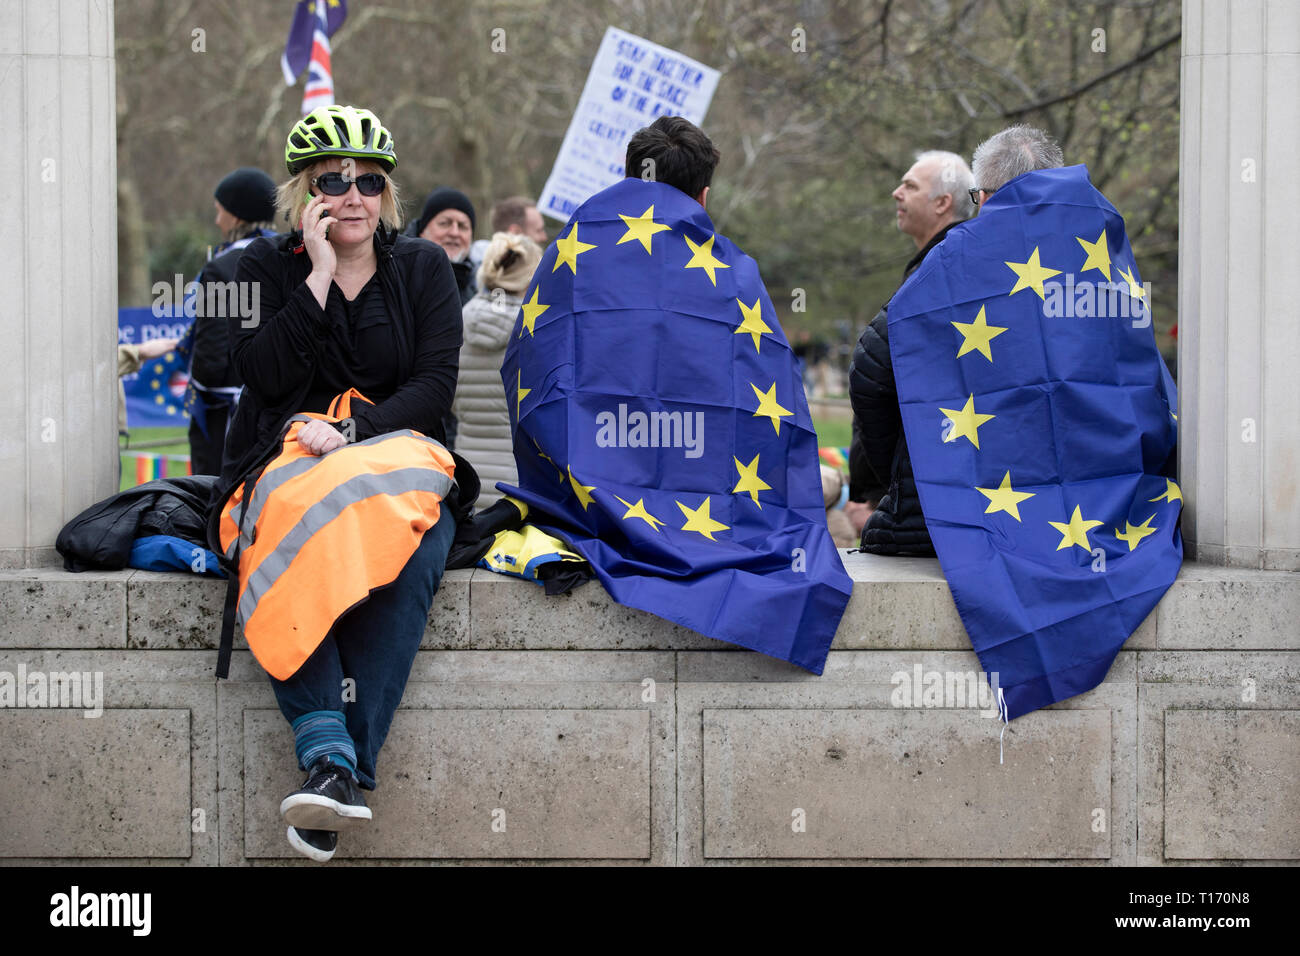 Woman on phone and two people wrapped in European Union flags sat on wall, People's Vote March, London, England - Stock Image